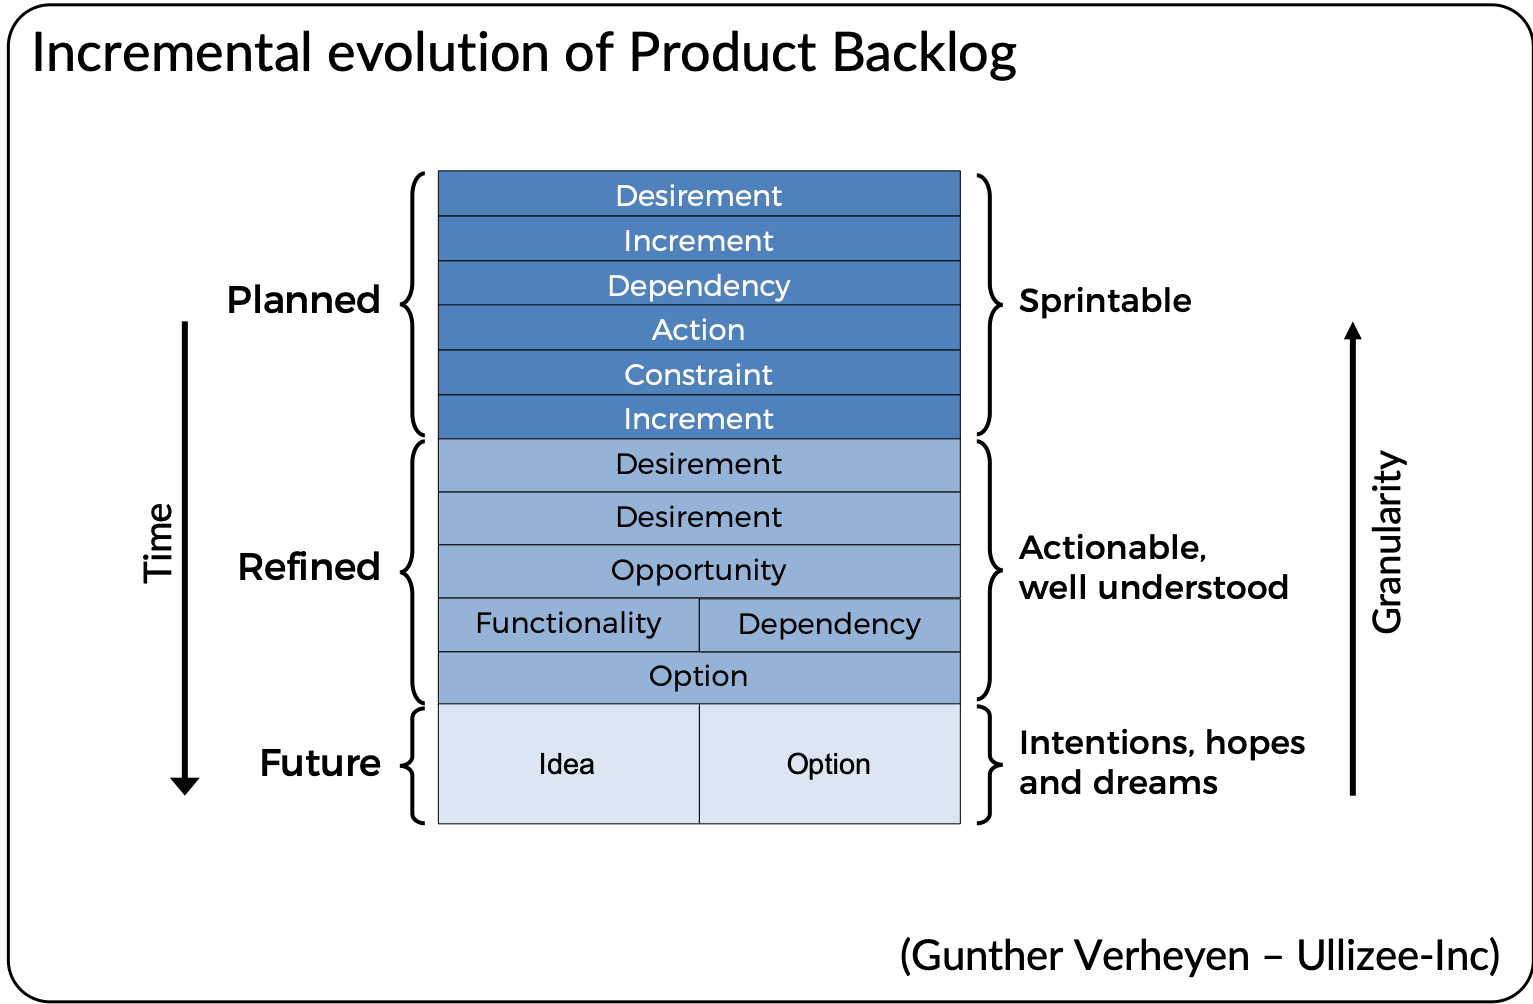 Incremental evolution of Product Backlog